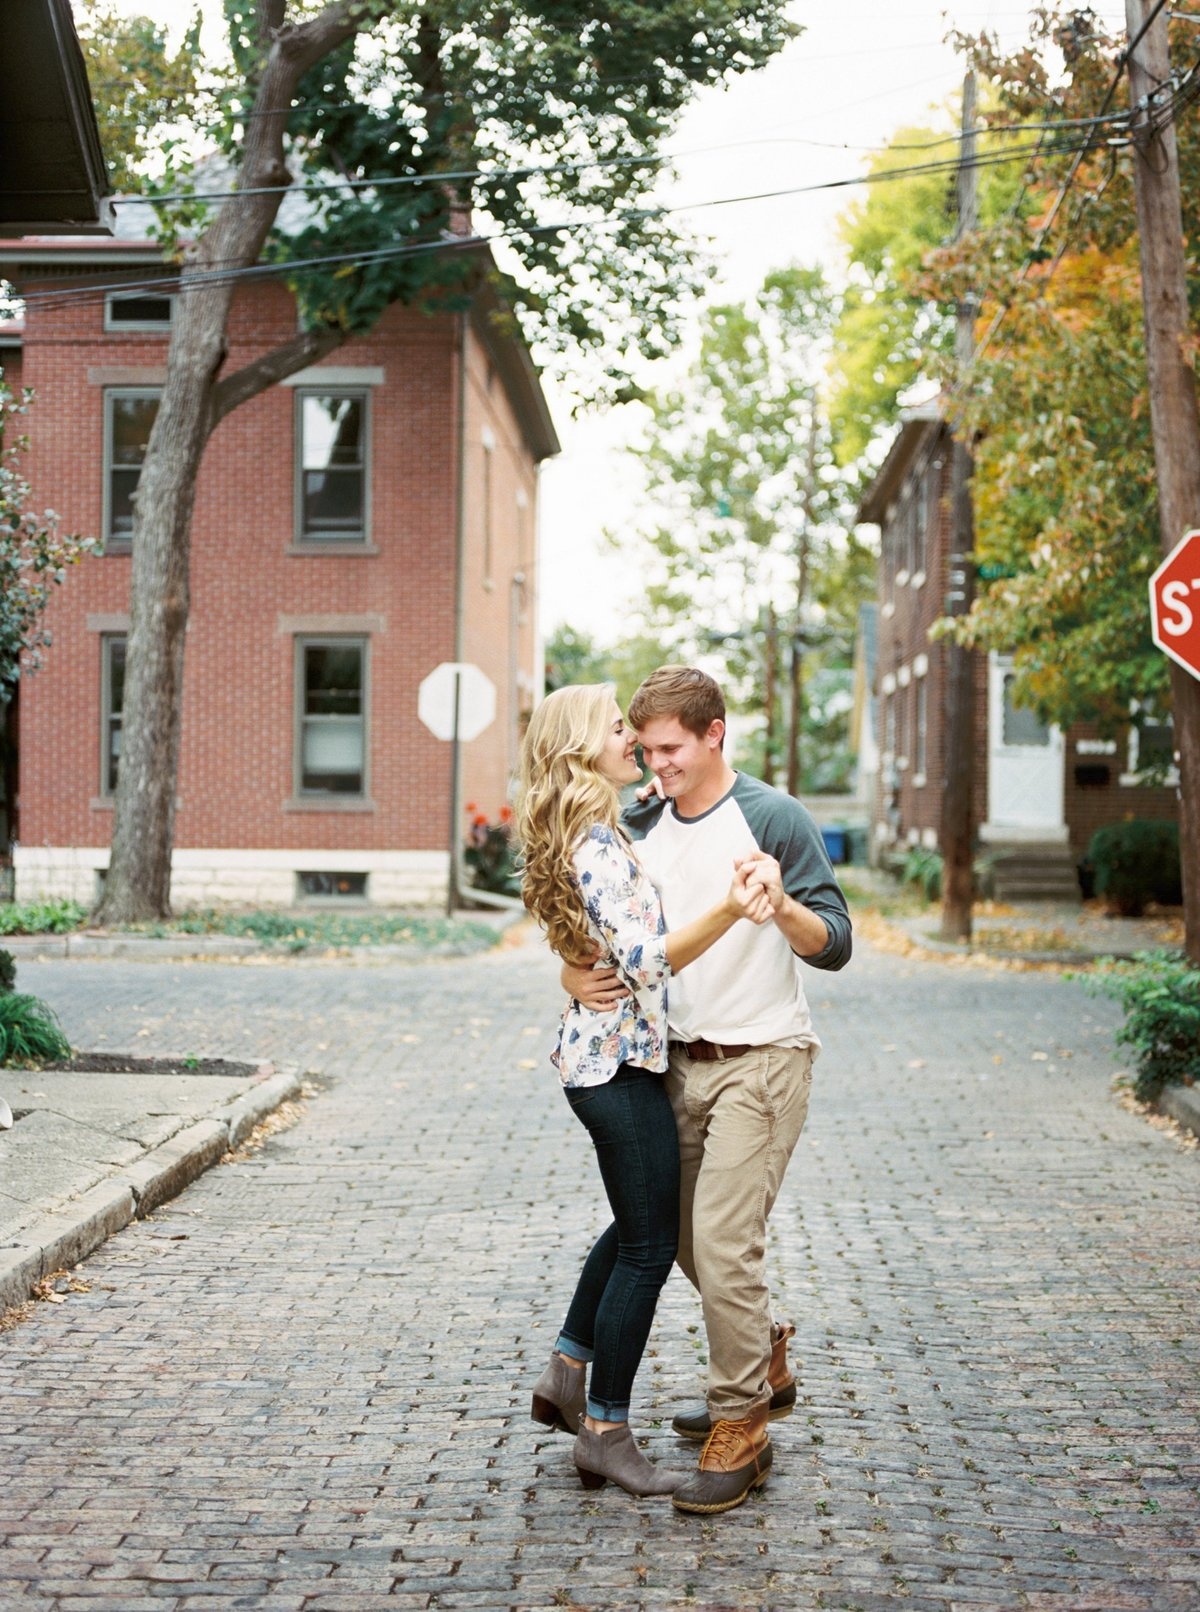 Columbus Ohio Engagement, Fine Art Film, Dancing in Street